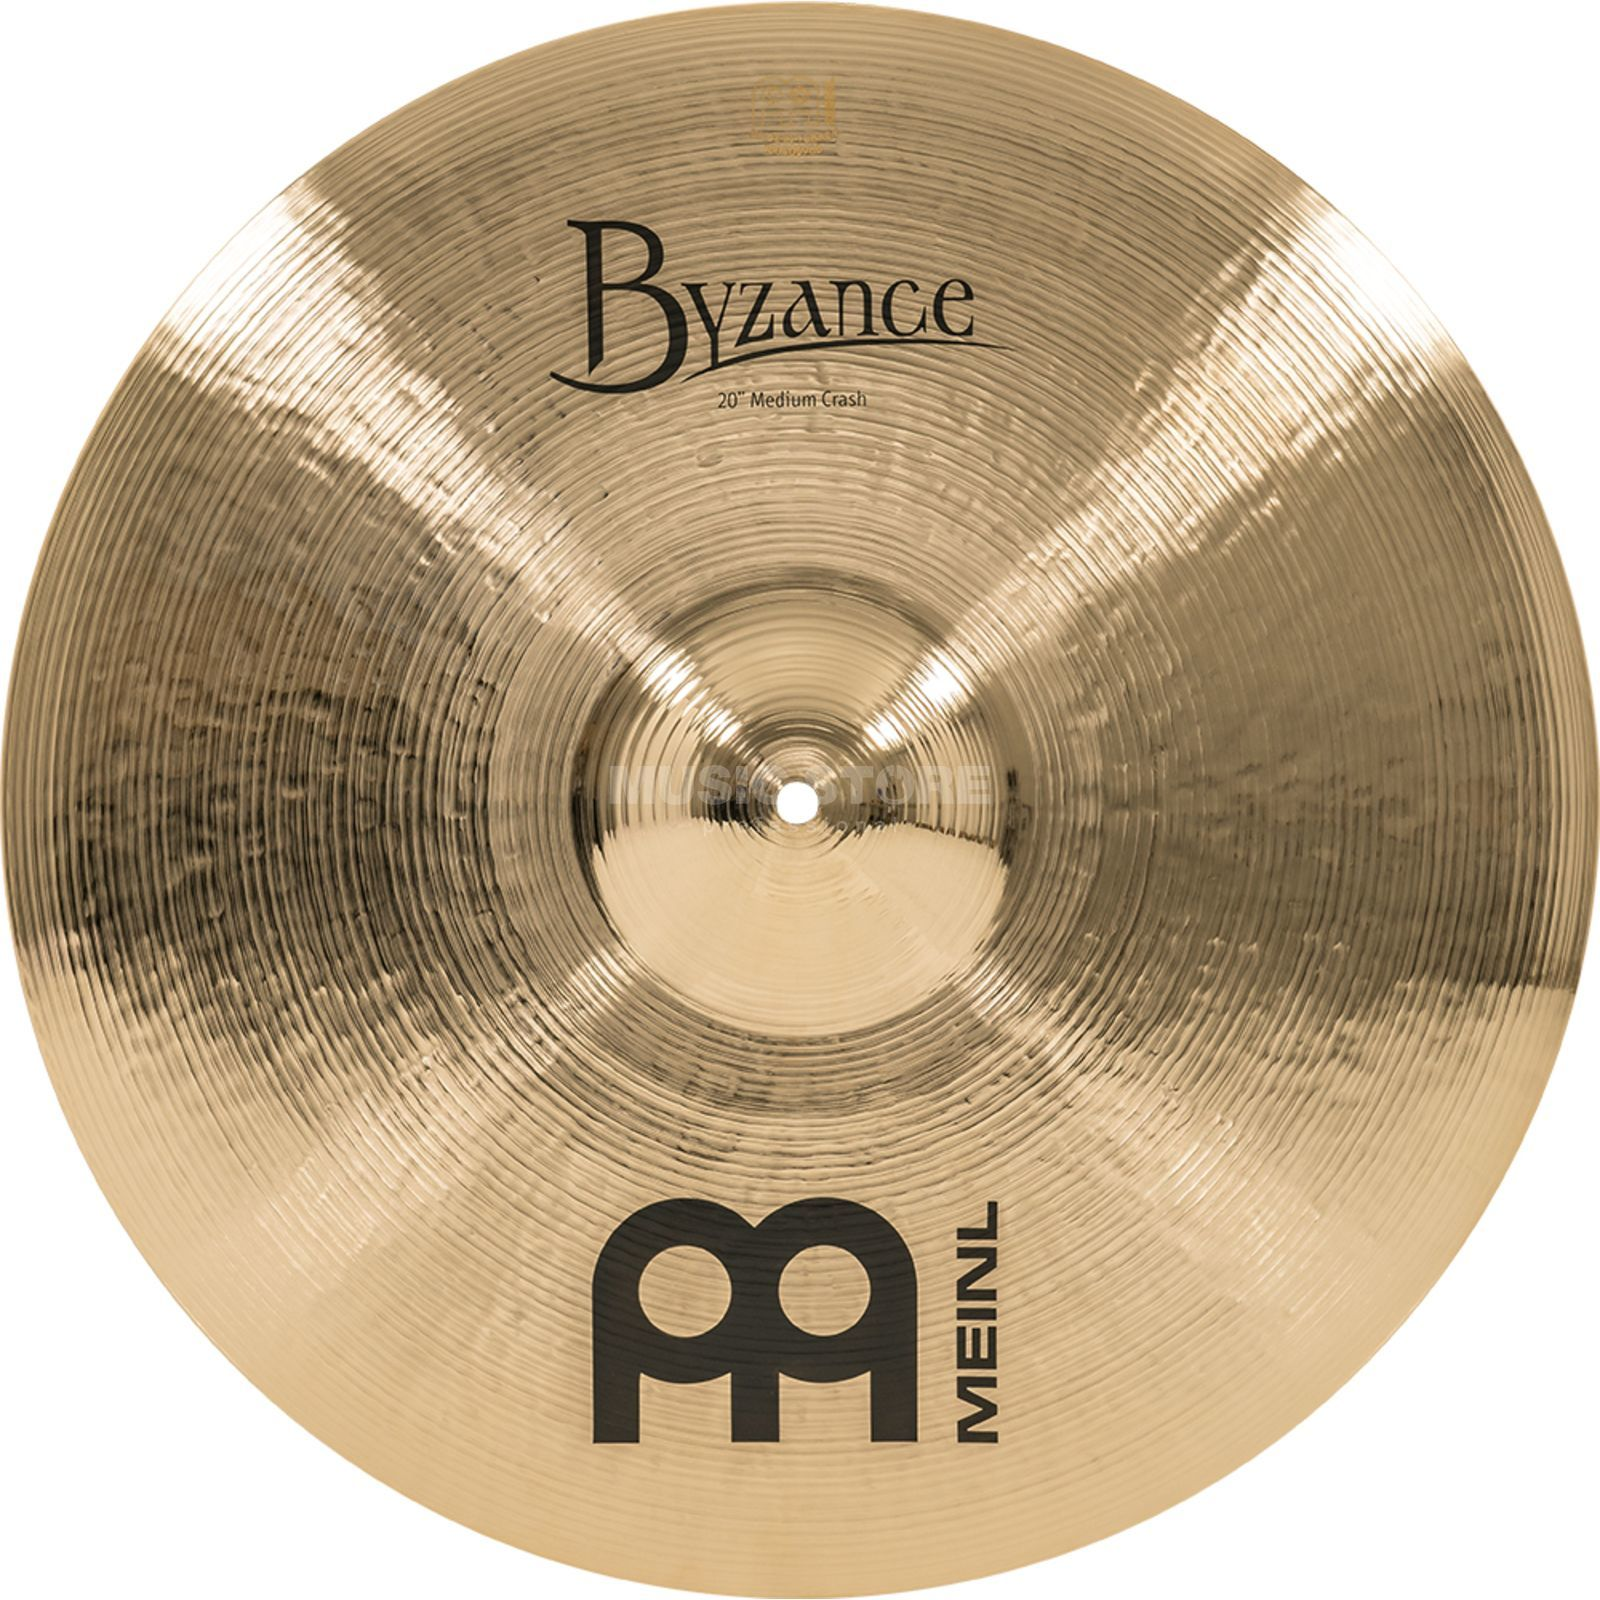 "Meinl Byzance Medium Crash 20"" B20MC-B, Brilliant Finish Produktbild"